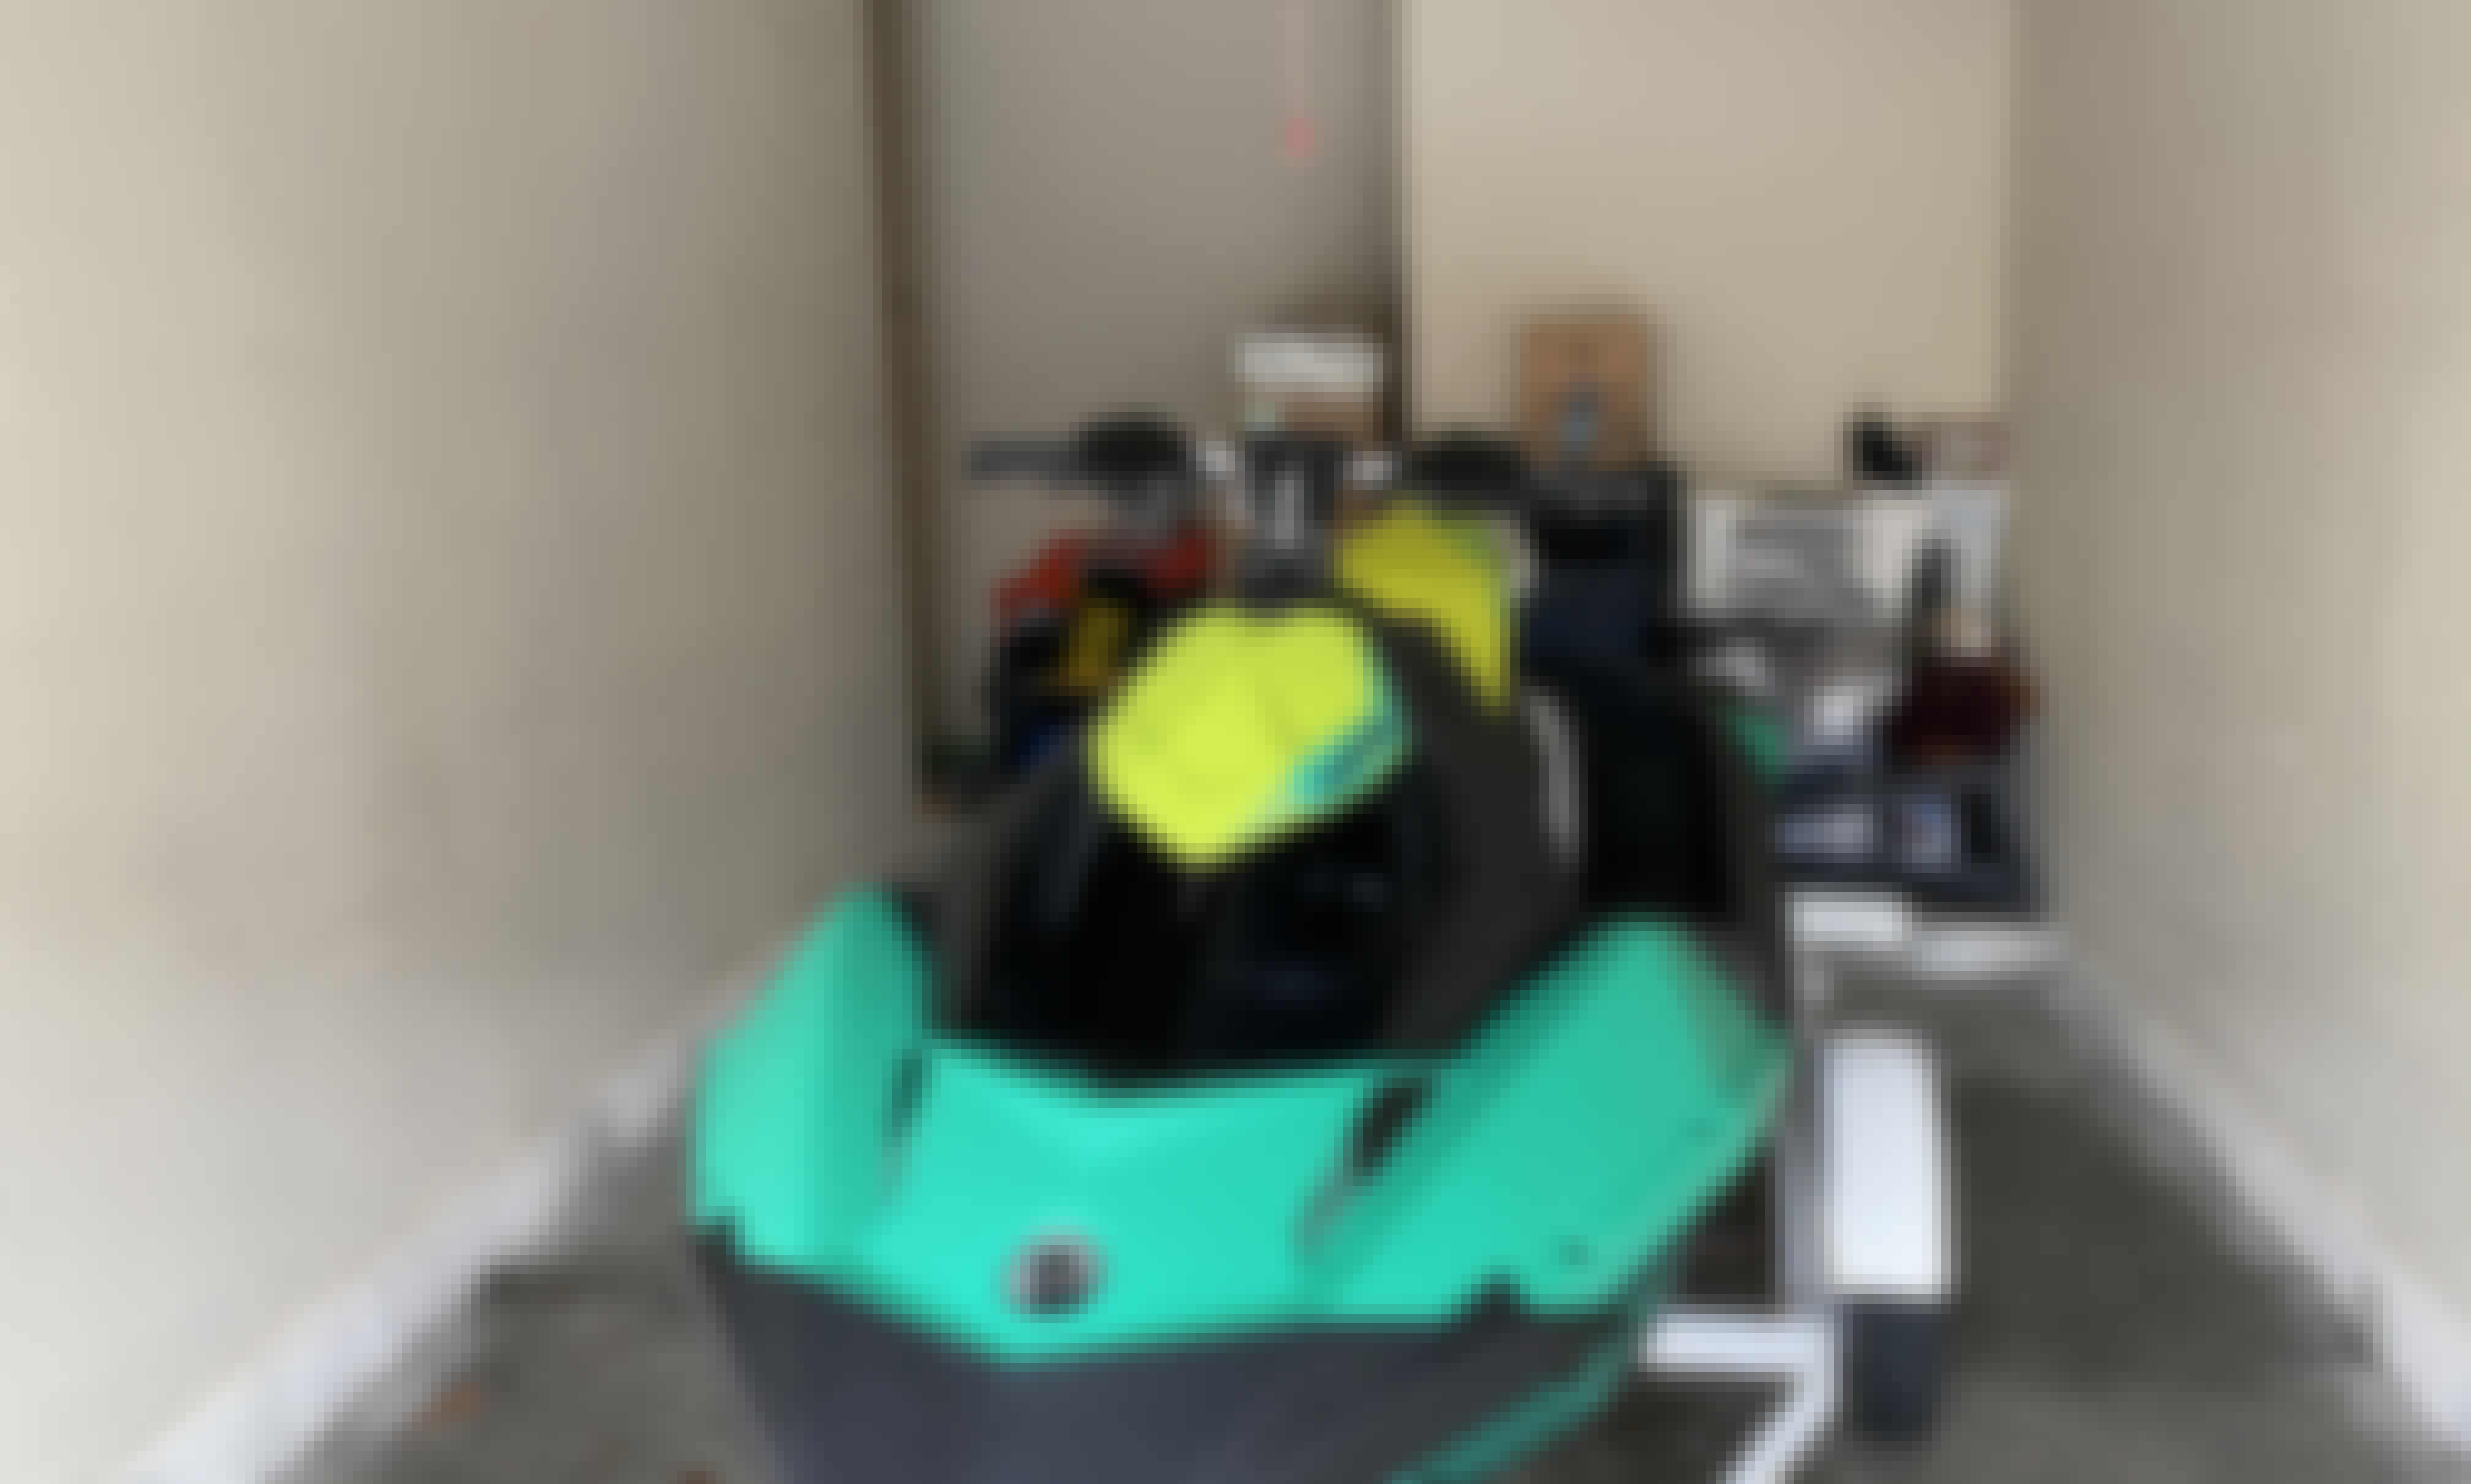 New 2021 Seadoo Spark Trixx For Rent in Lake Elsinore, California